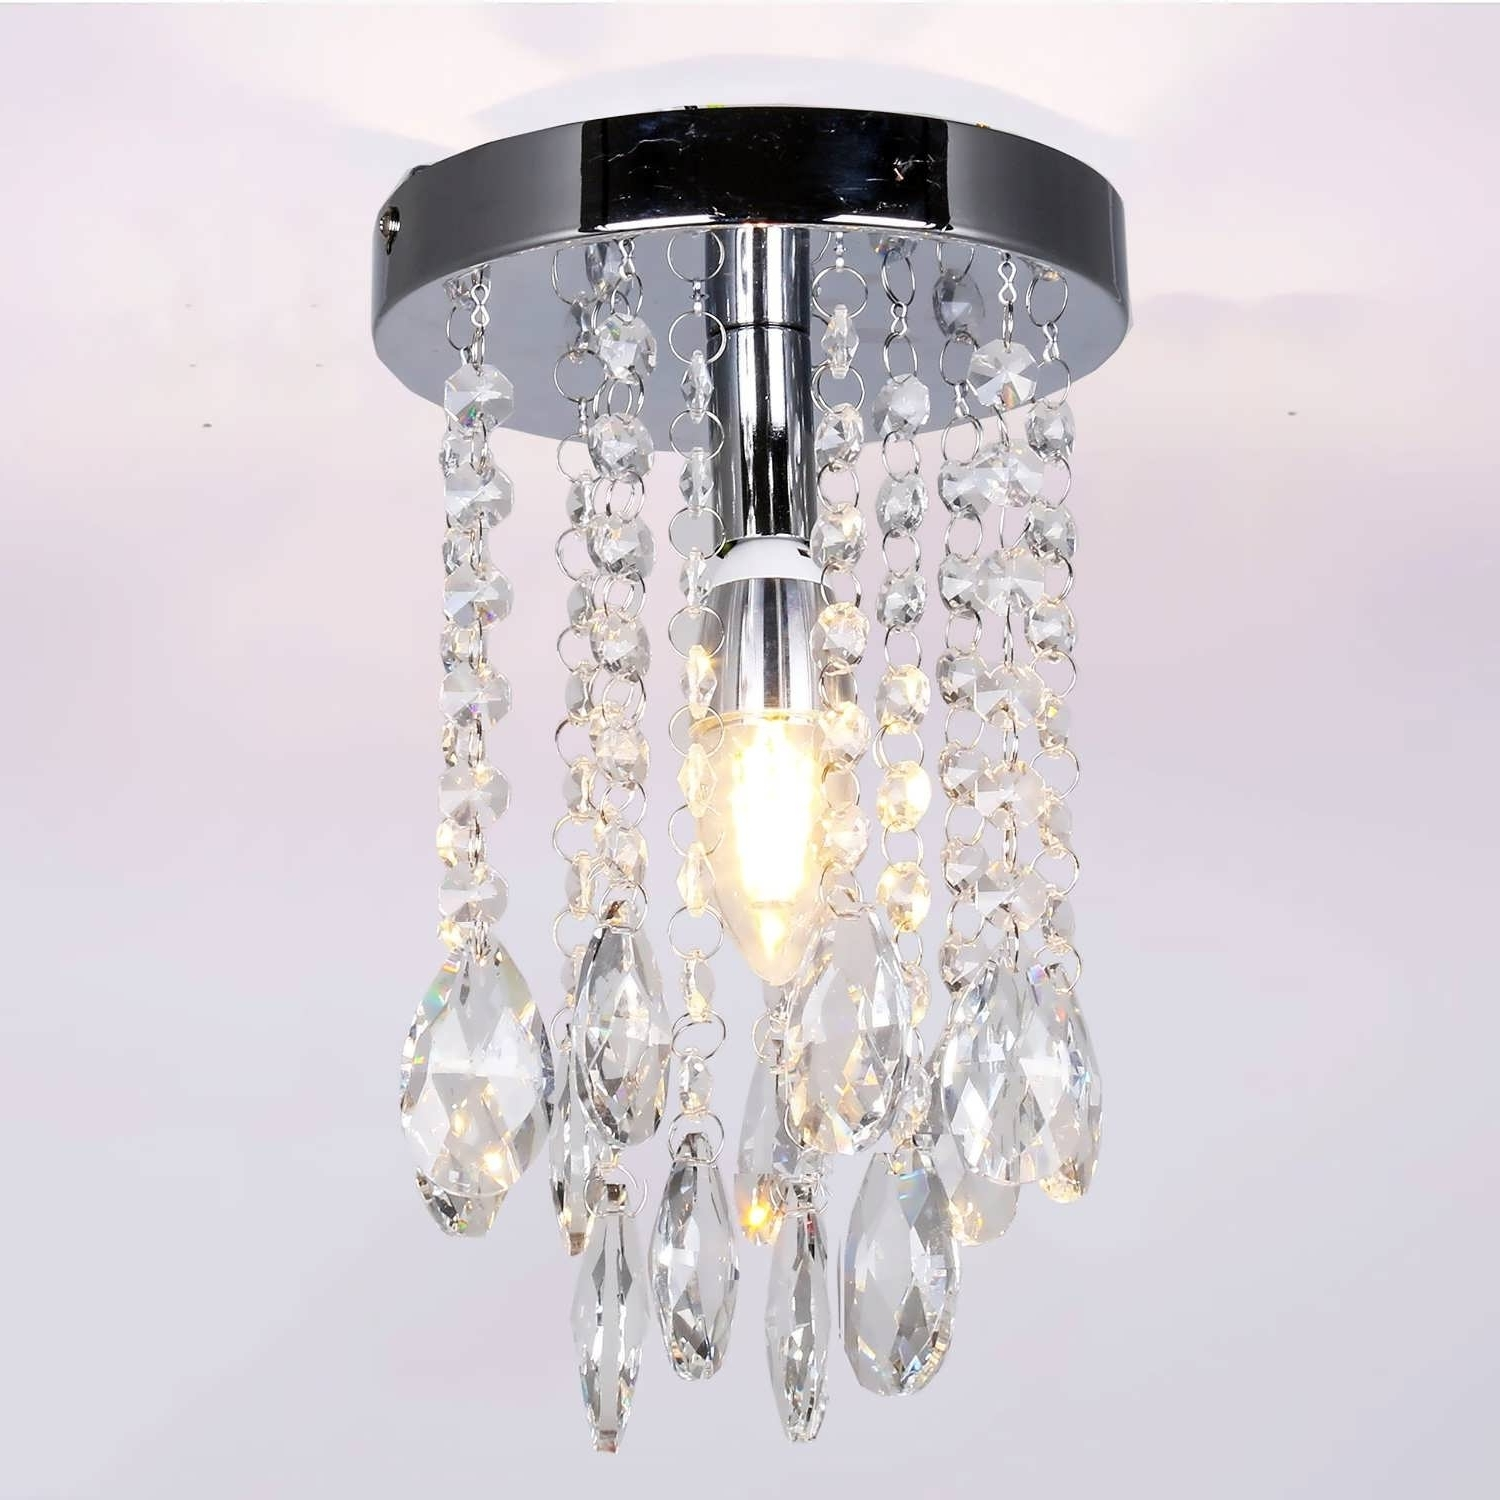 2019 Menards Outdoor Hanging Lights Regarding Light : Rustic Chandeliers Crystal Chandelier Kids Room Gold Baby (View 8 of 20)